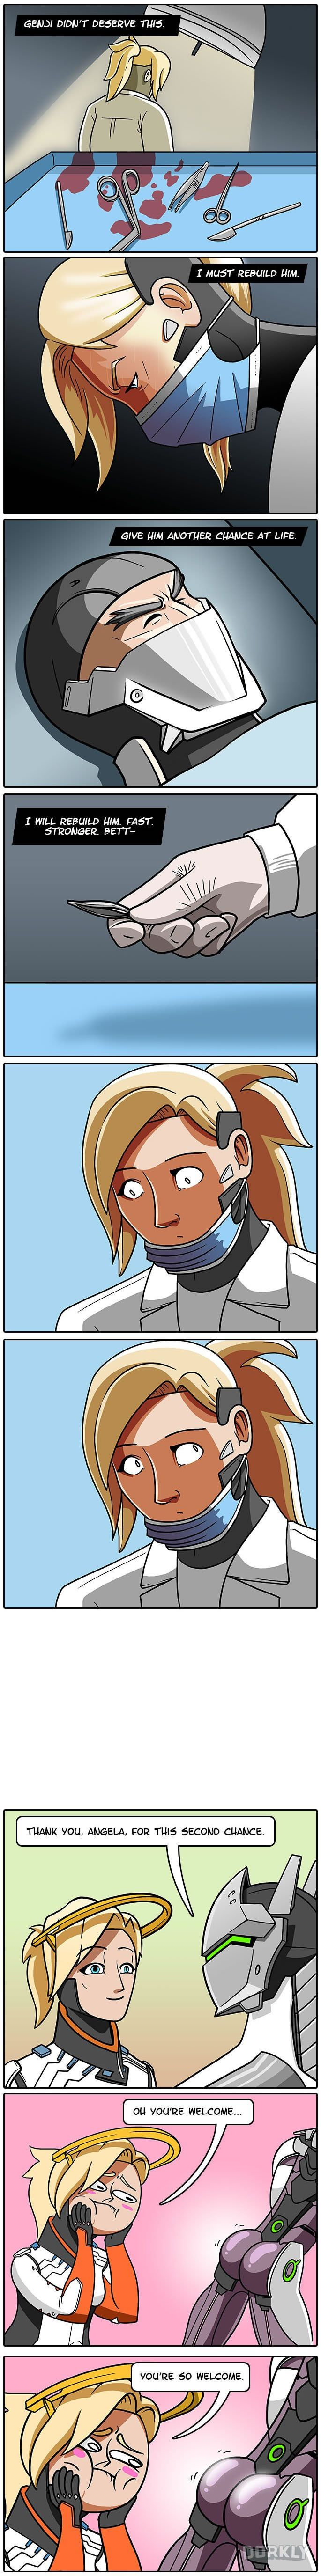 Overwatch's Secret Story Behind Mercy and Genji - 9GAG